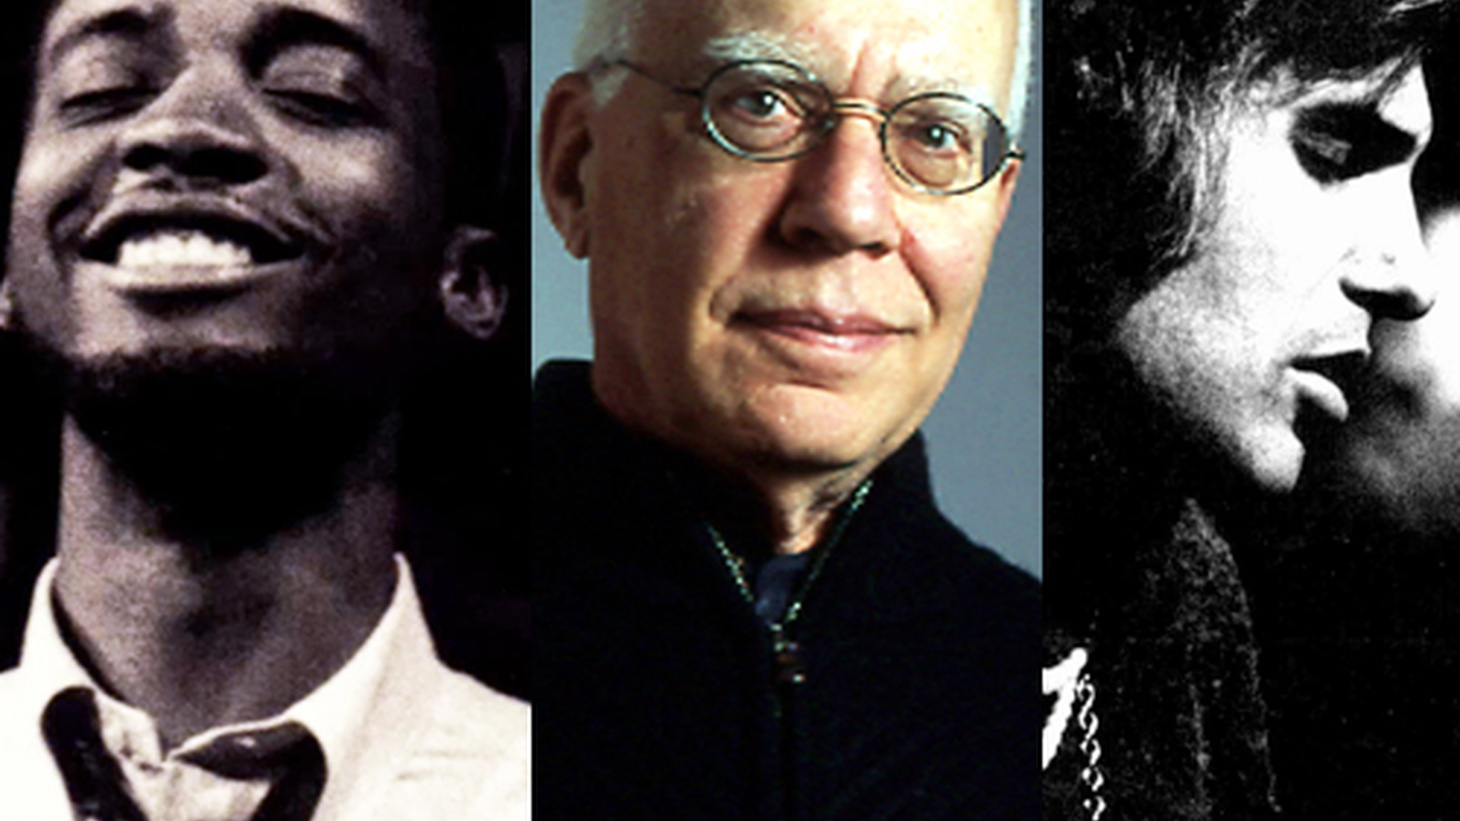 This week Rhythm Planet showcases the talents of three great modern pianists who deserve wider recognition.